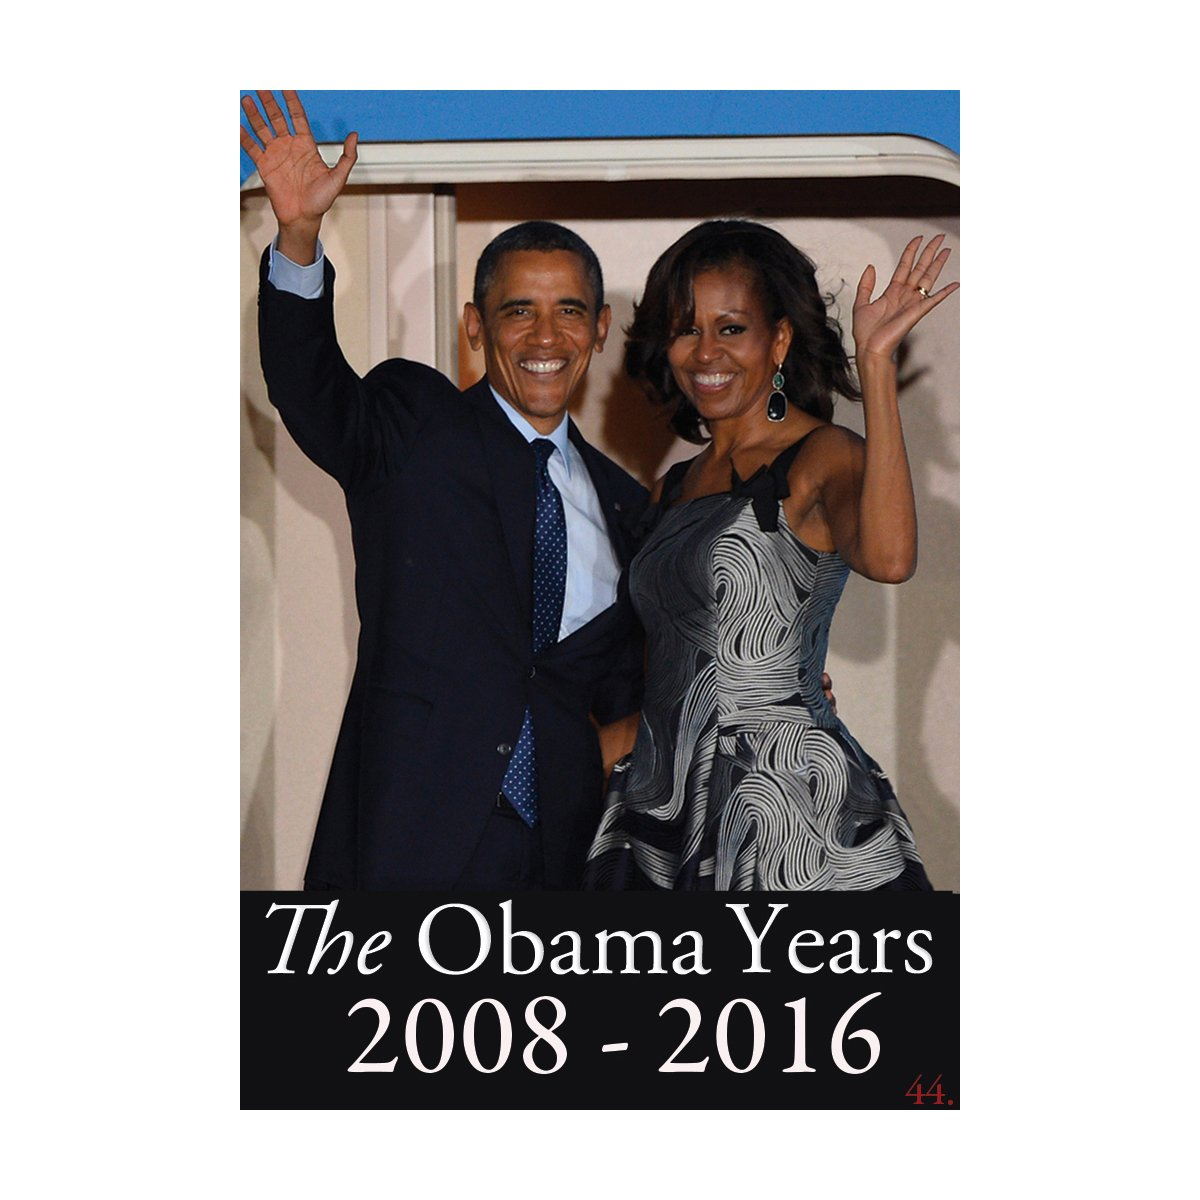 The Obama Years: Black History Magnet by Shades of Color